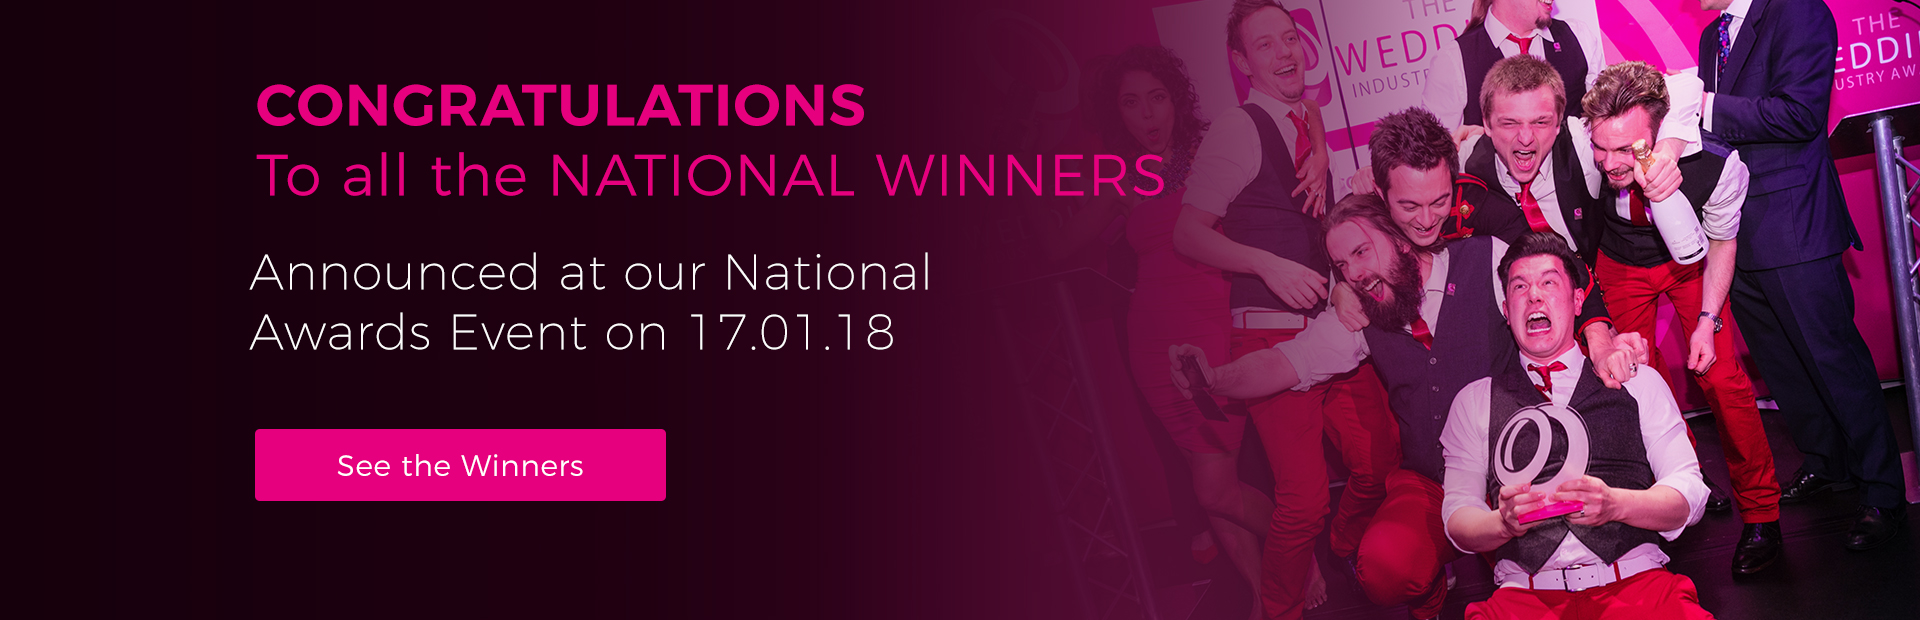 SEE THE NATIONAL WINNERS